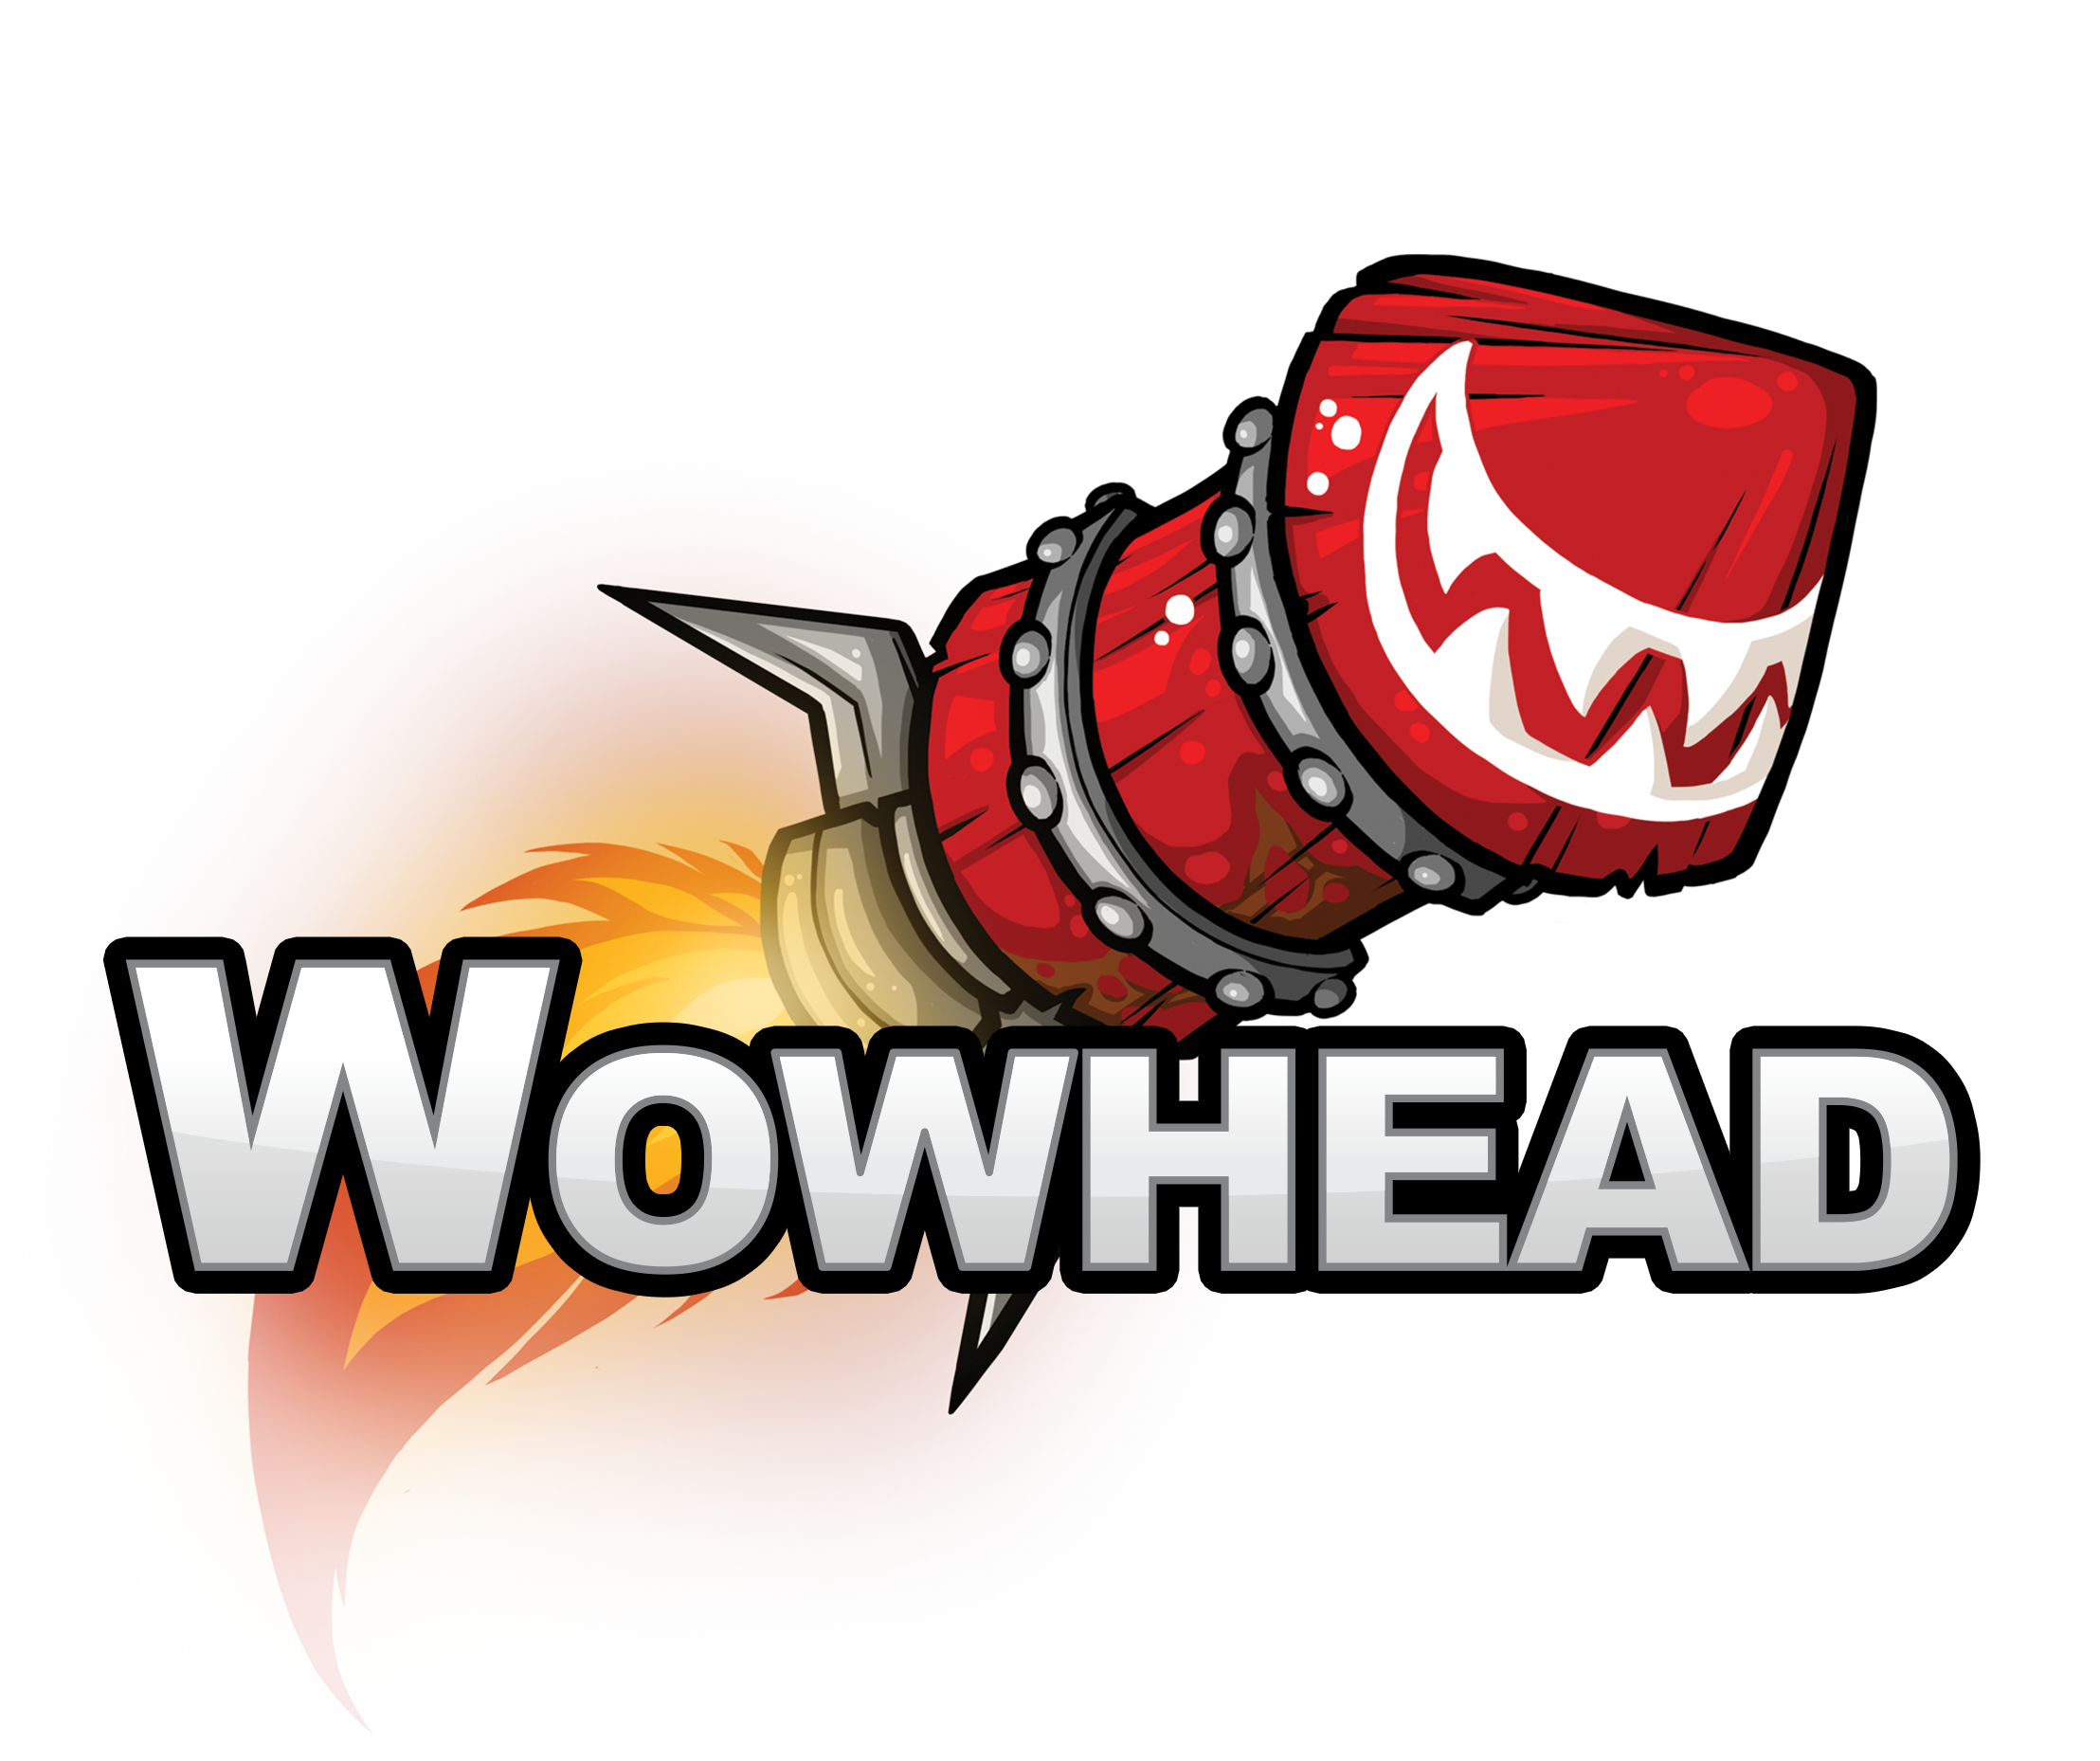 Community Discord Servers - Wowhead